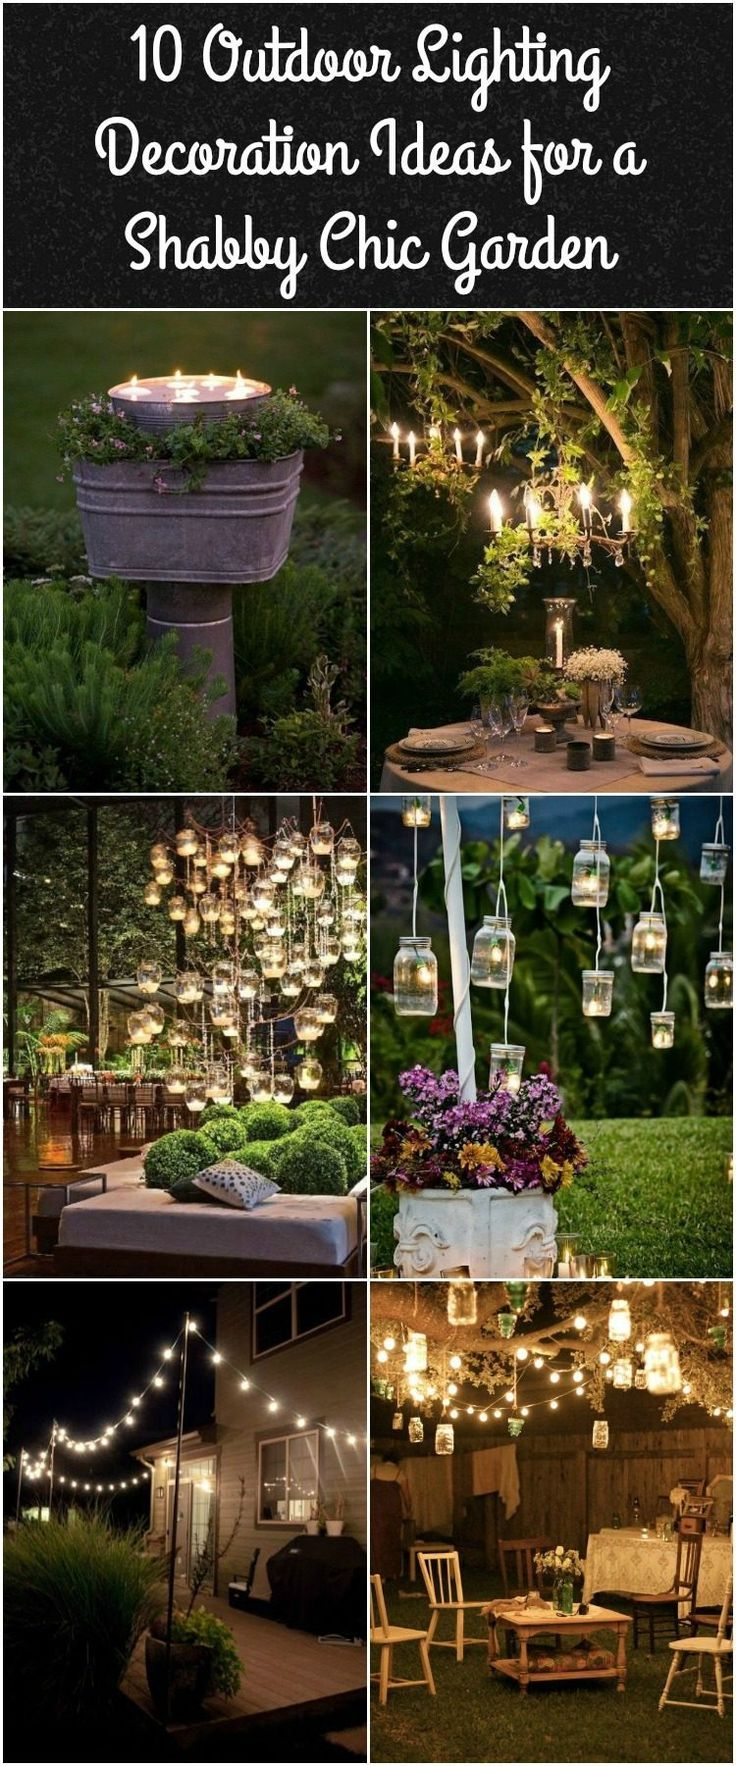 Outside Garden Ideas awesome diy backyard garden ideas 10 Outdoor Lighting Ideas For A Shabby Chic Garden 6 Is Lovely